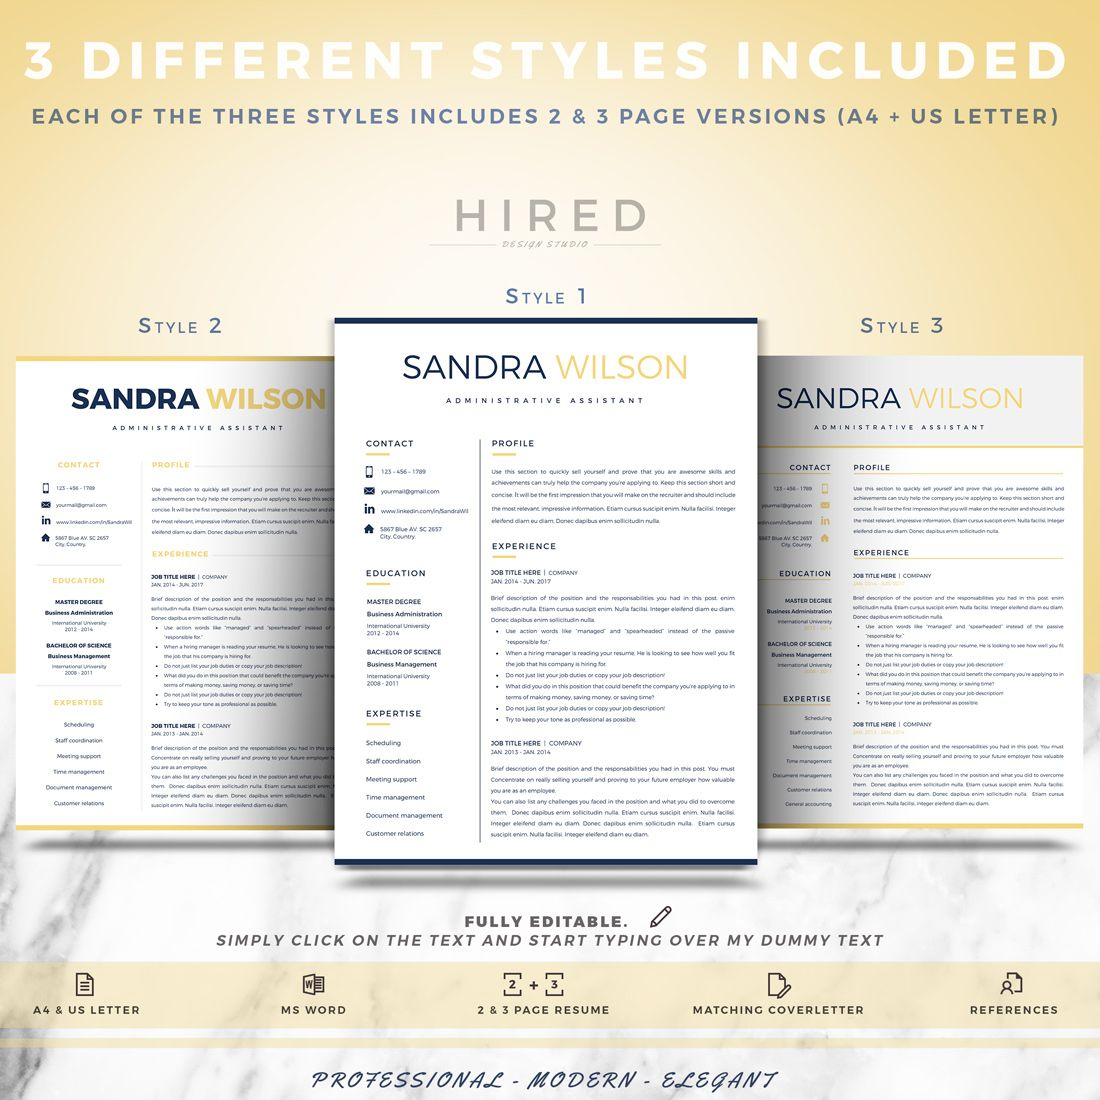 Administrative assistant resume professional resume